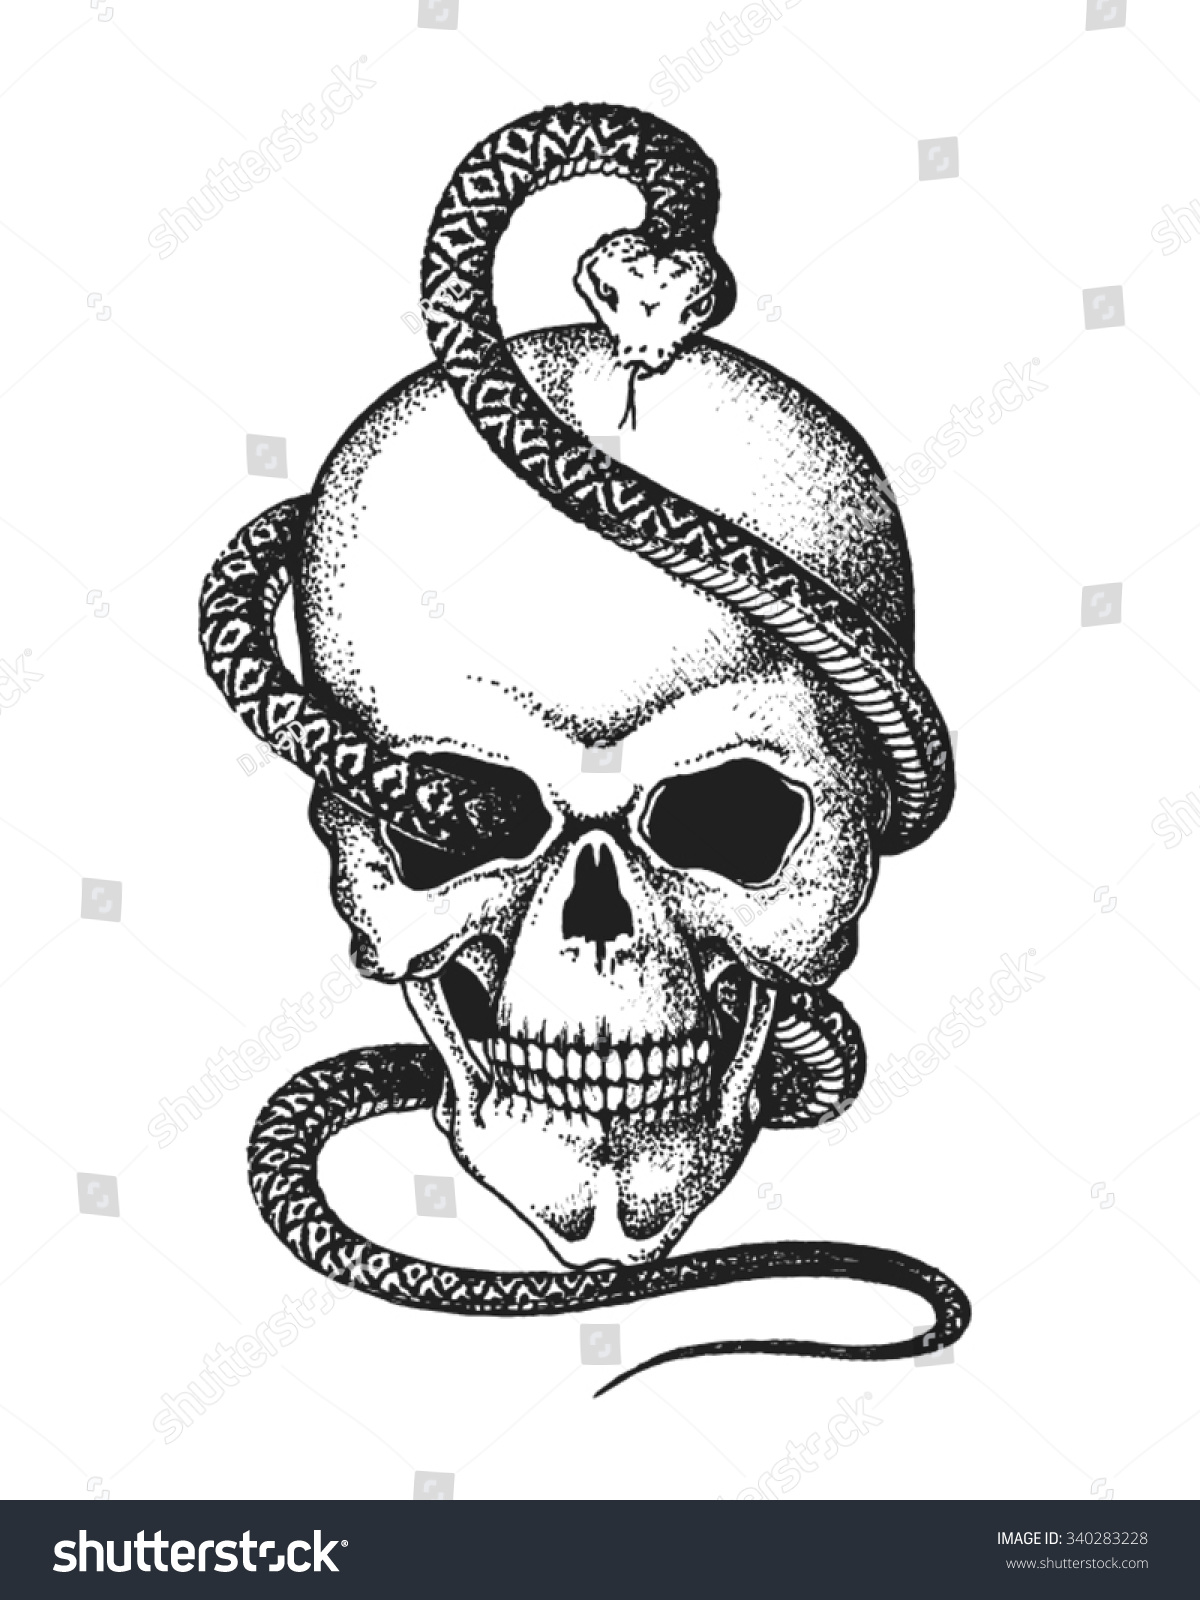 Hand Drawn Human Skull Entwined By Snake Vector Illustration